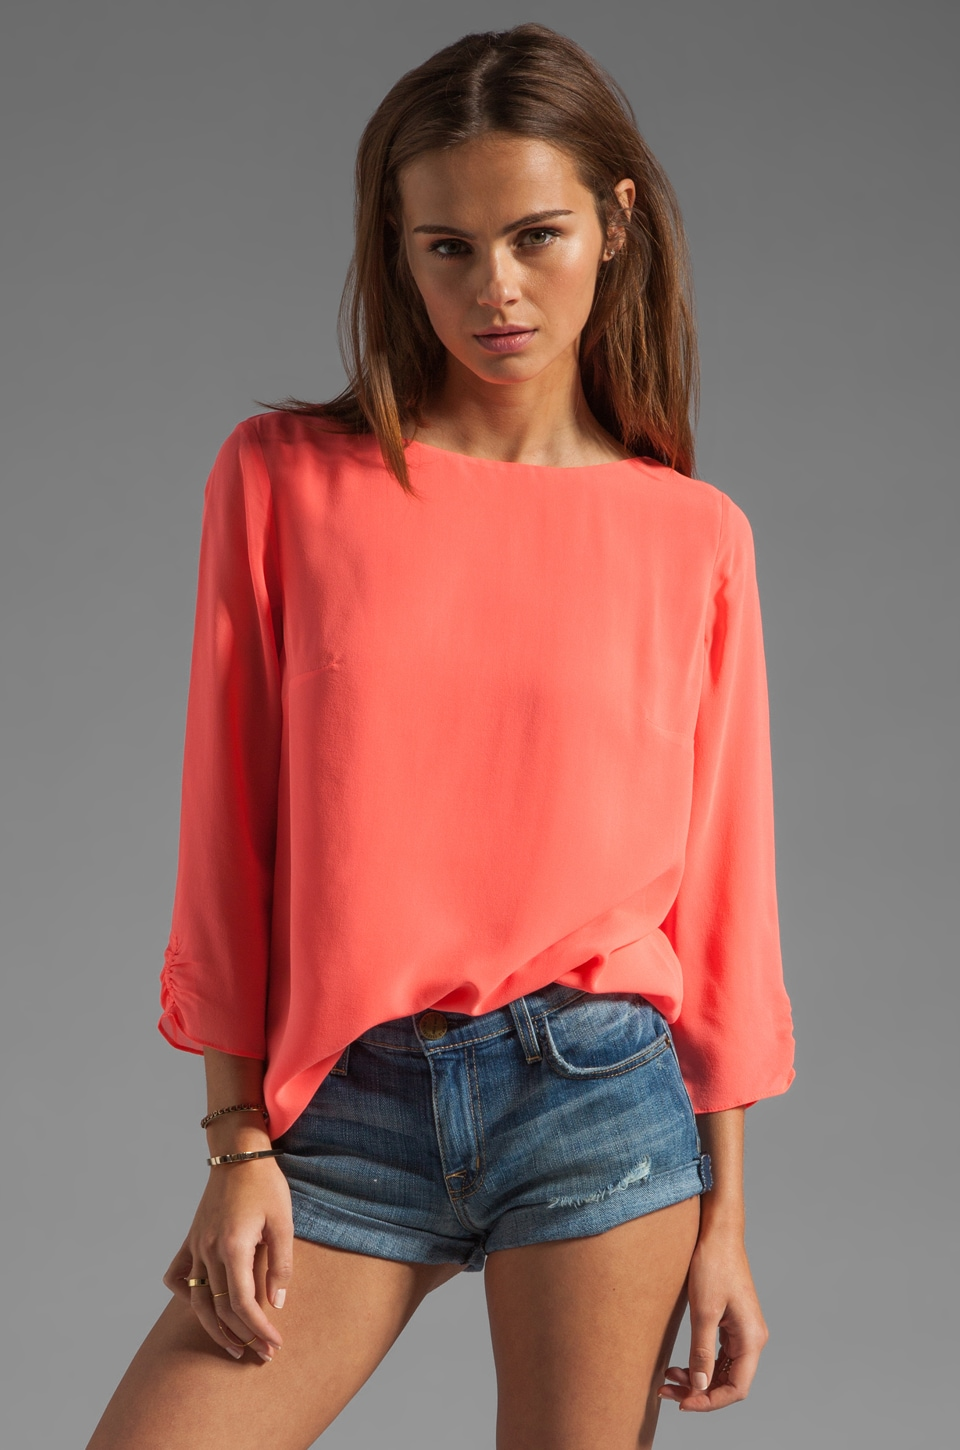 Shoshanna Tara Blouse in Neon Peach